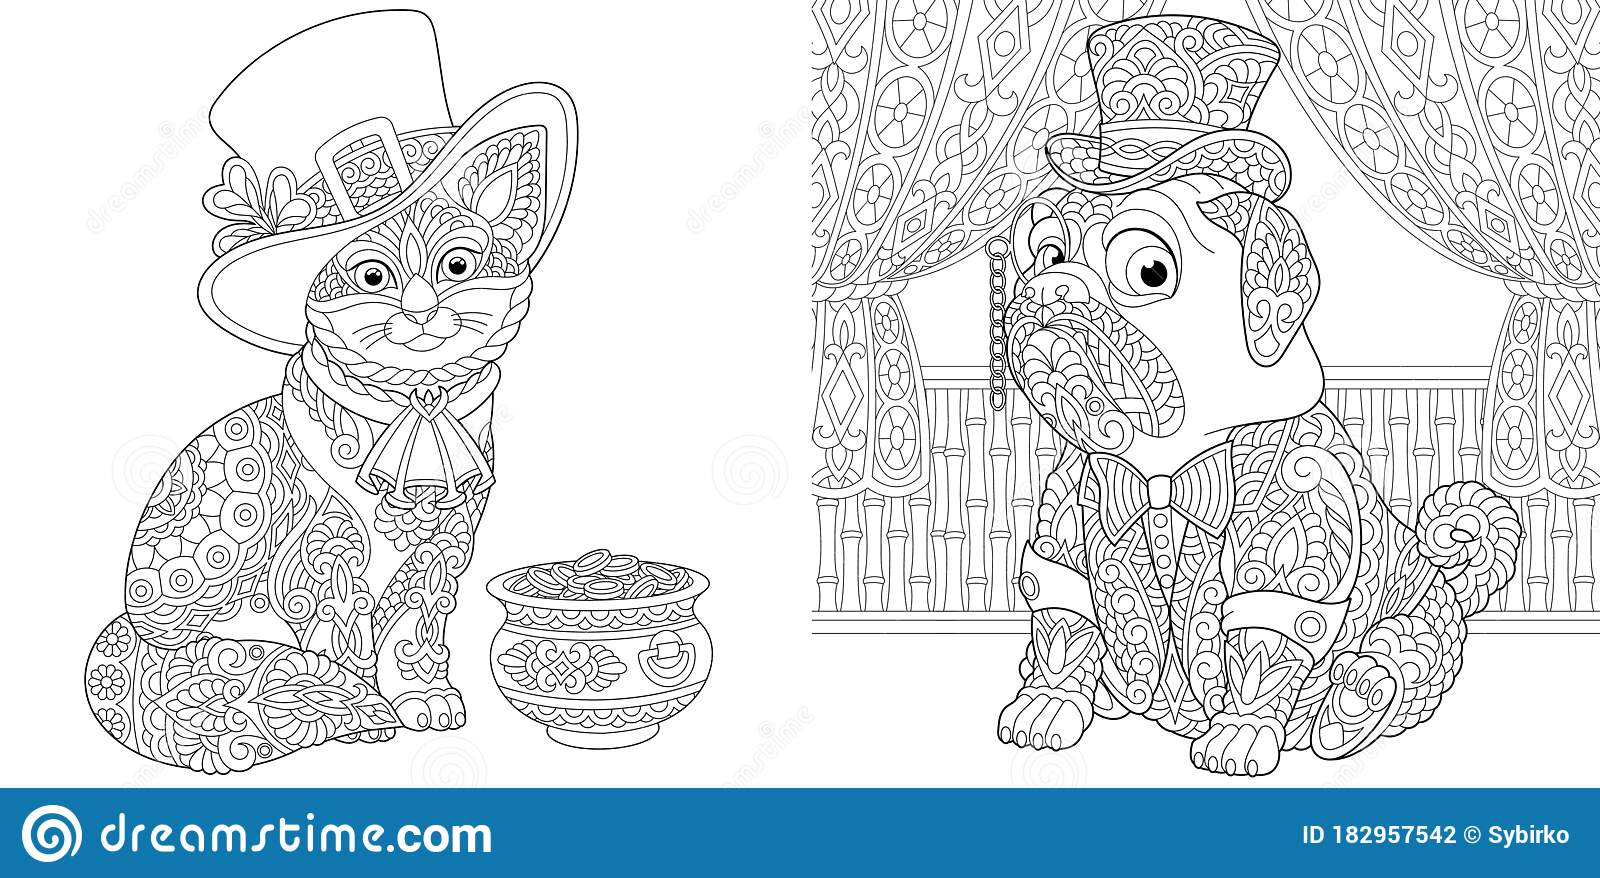 Coloring Pages With Cat And Pug Dog Stock Vector Illustration Of Doodle Gentleman 182957542